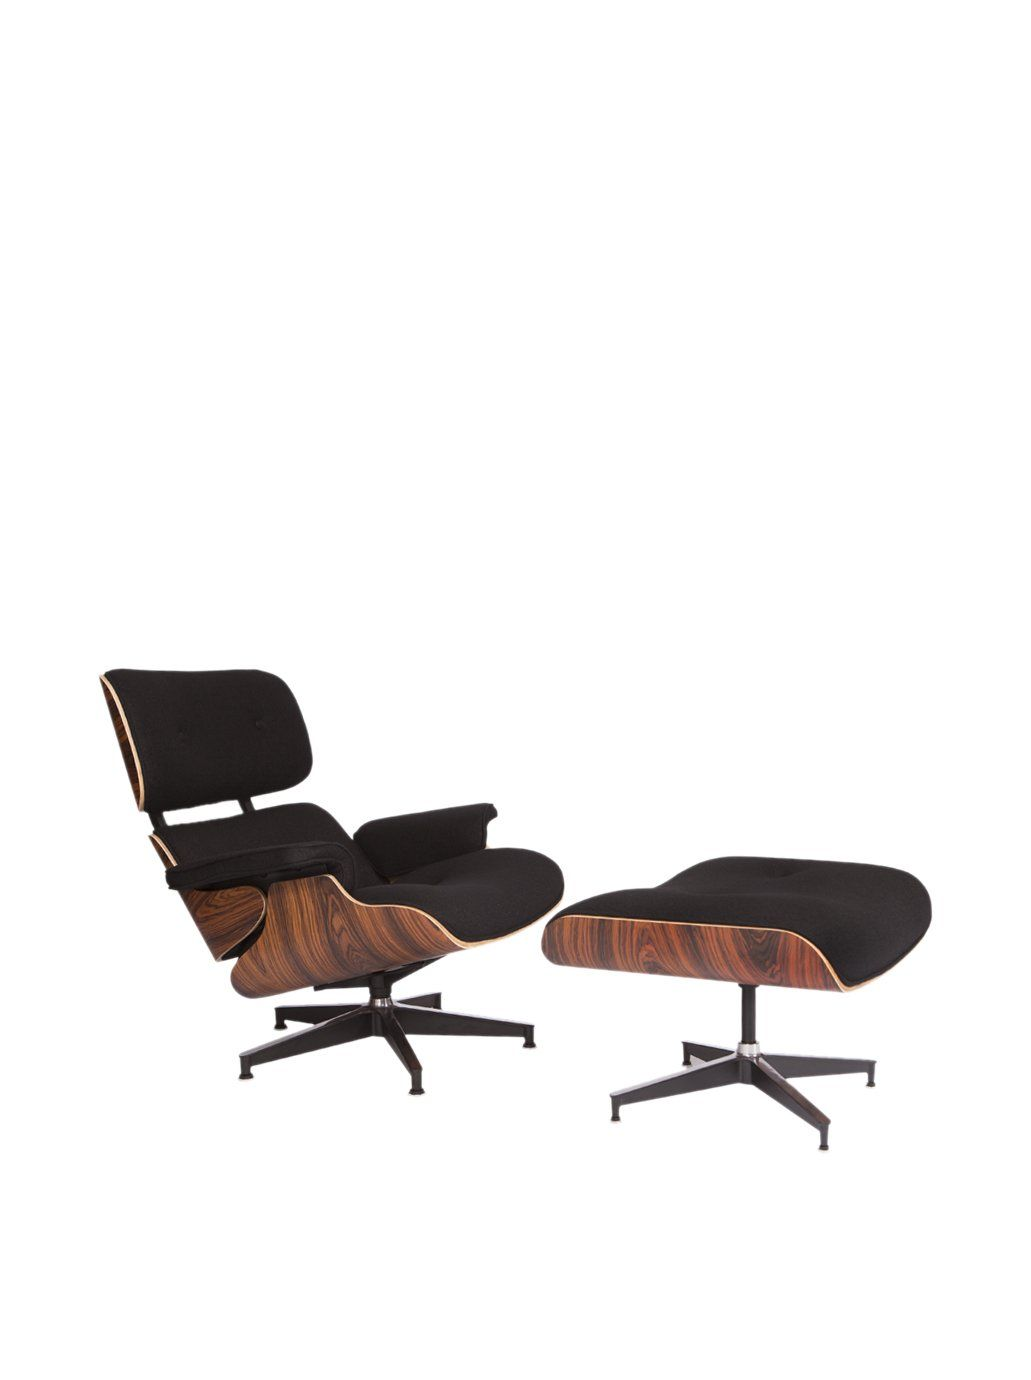 LeisureMod Modern Plywood Zane Lounge Chair U0026 Ottoman At MYHABIT